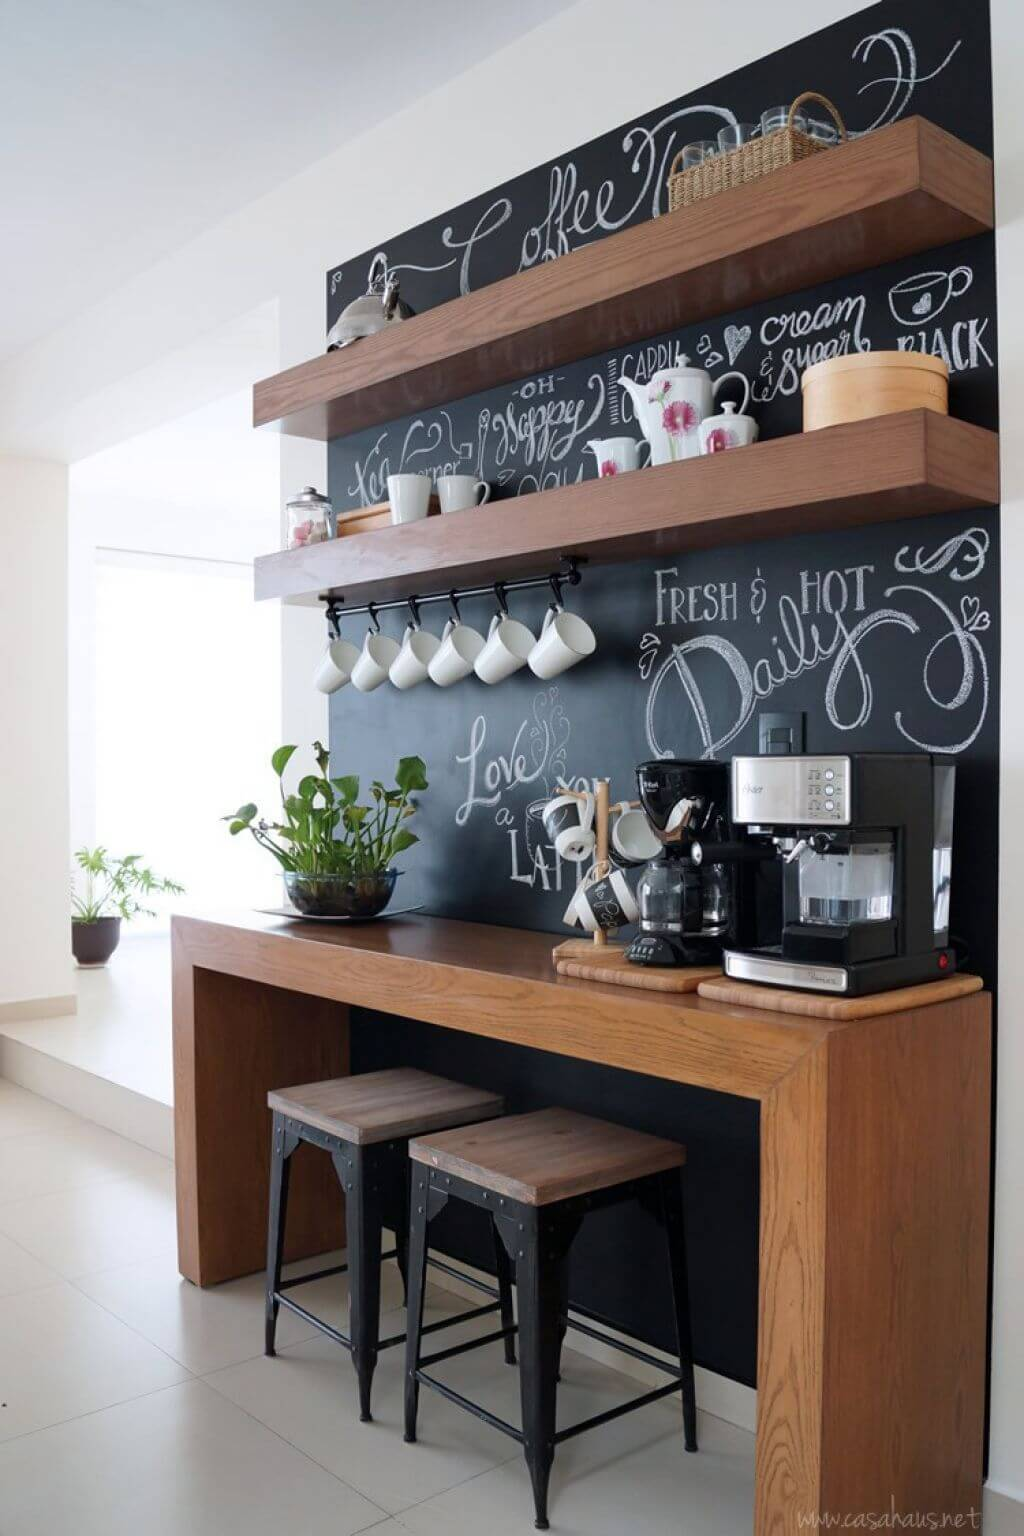 24 Best Coffee Mug Organization Ideas And Designs For 2019